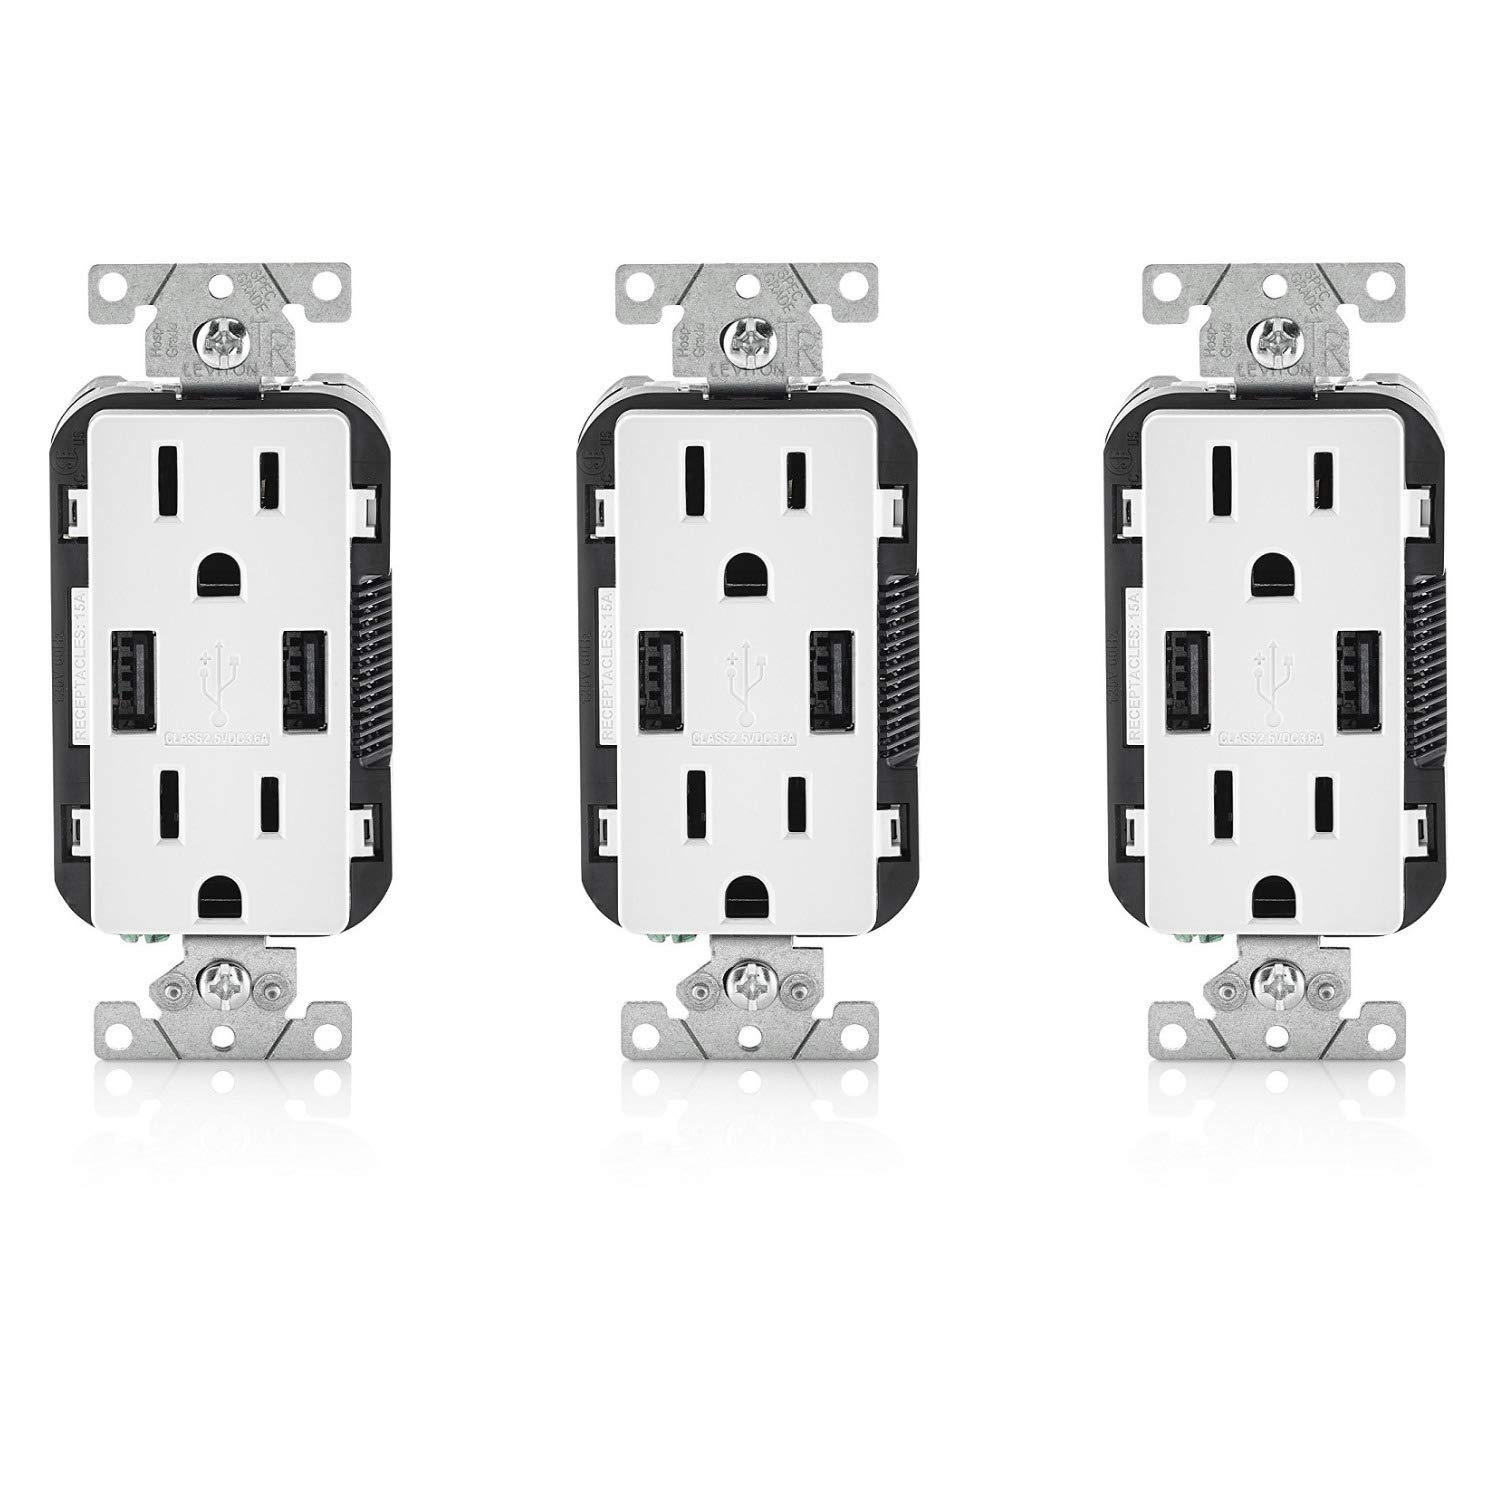 Leviton T5632-3BW 15-Amp USB Charger/Tamper Resistant Duplex Receptacle Pack of 3, White